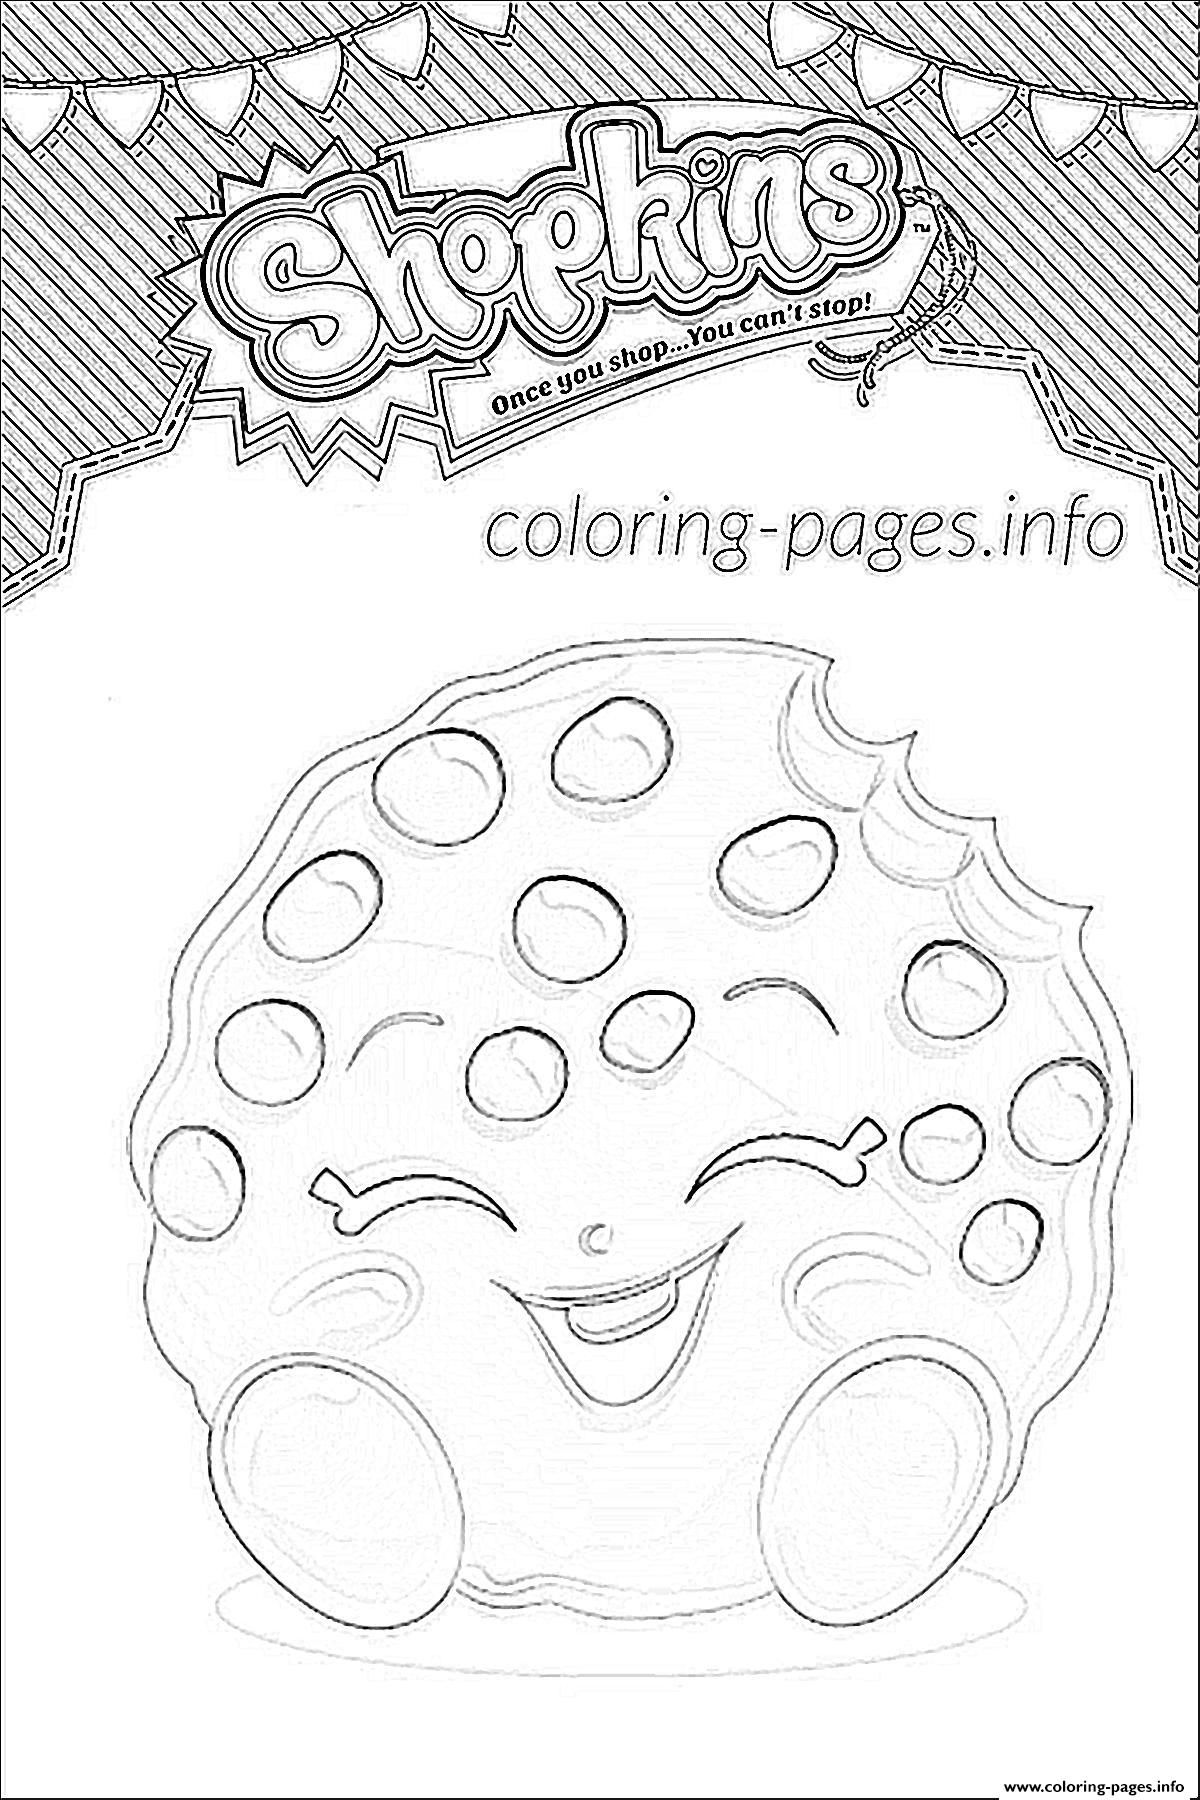 Print Shopkins Kooky Cookie Shoppies Coloring Pages